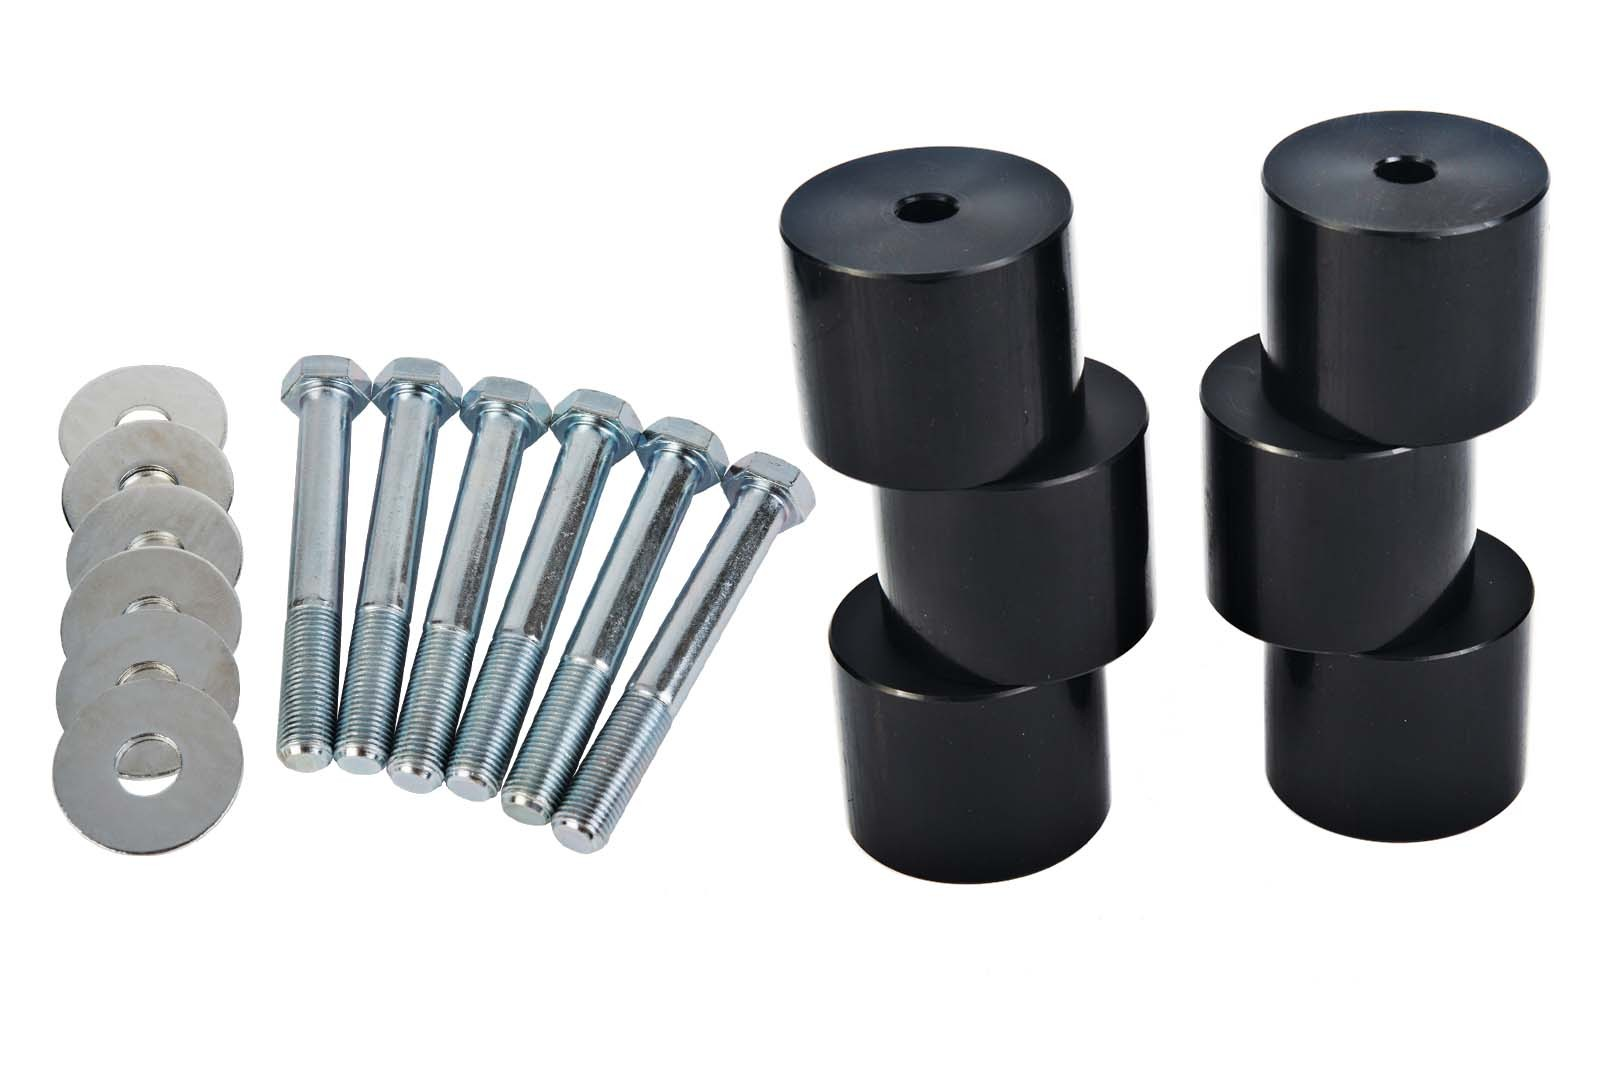 VMN also provides tub override spacers to support the tub after the body lift.